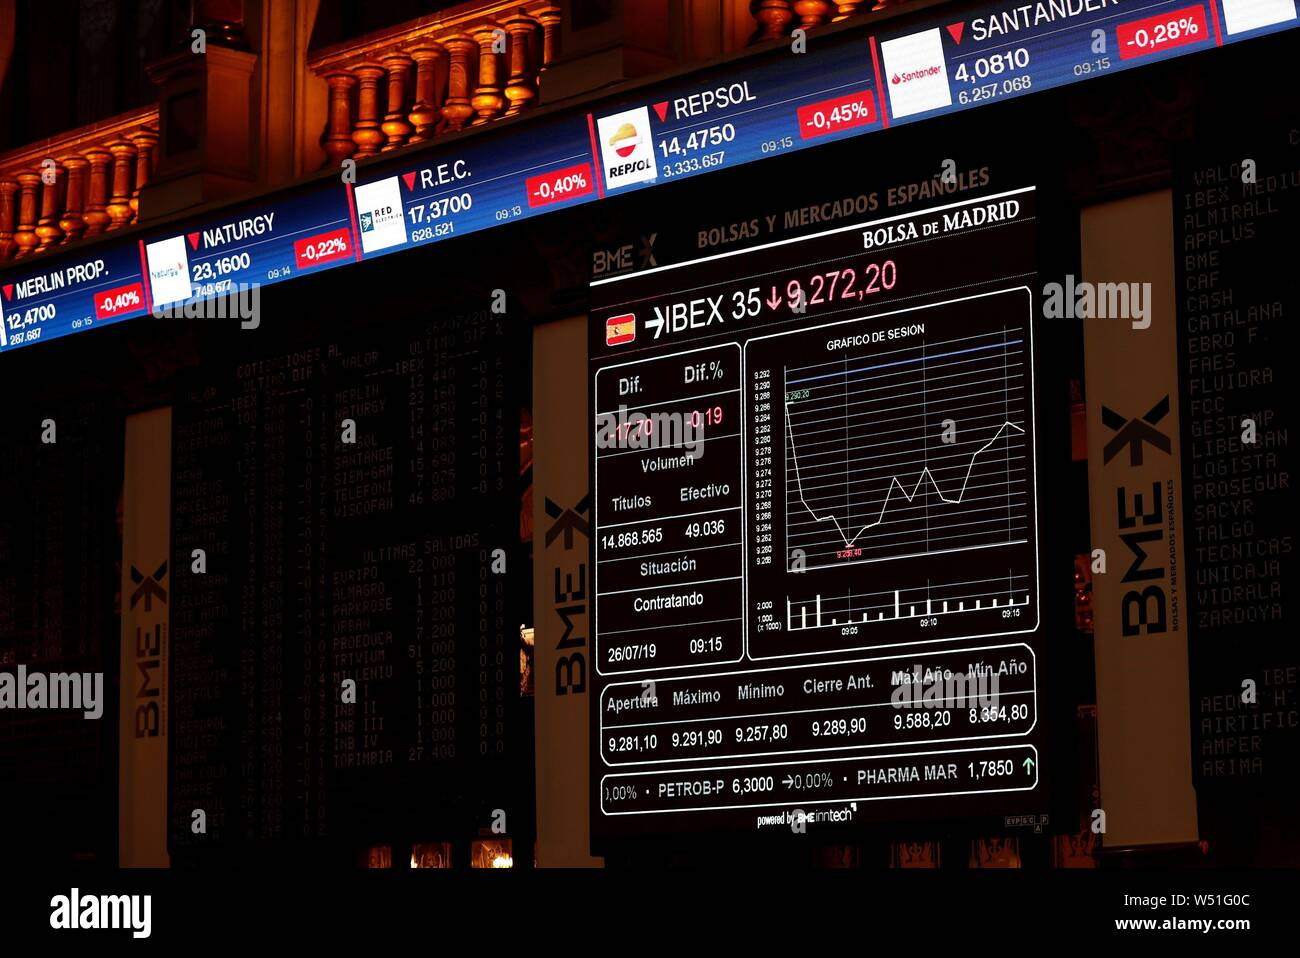 Madrid, Spain  26th July, 2019  A screen displays a chart with the